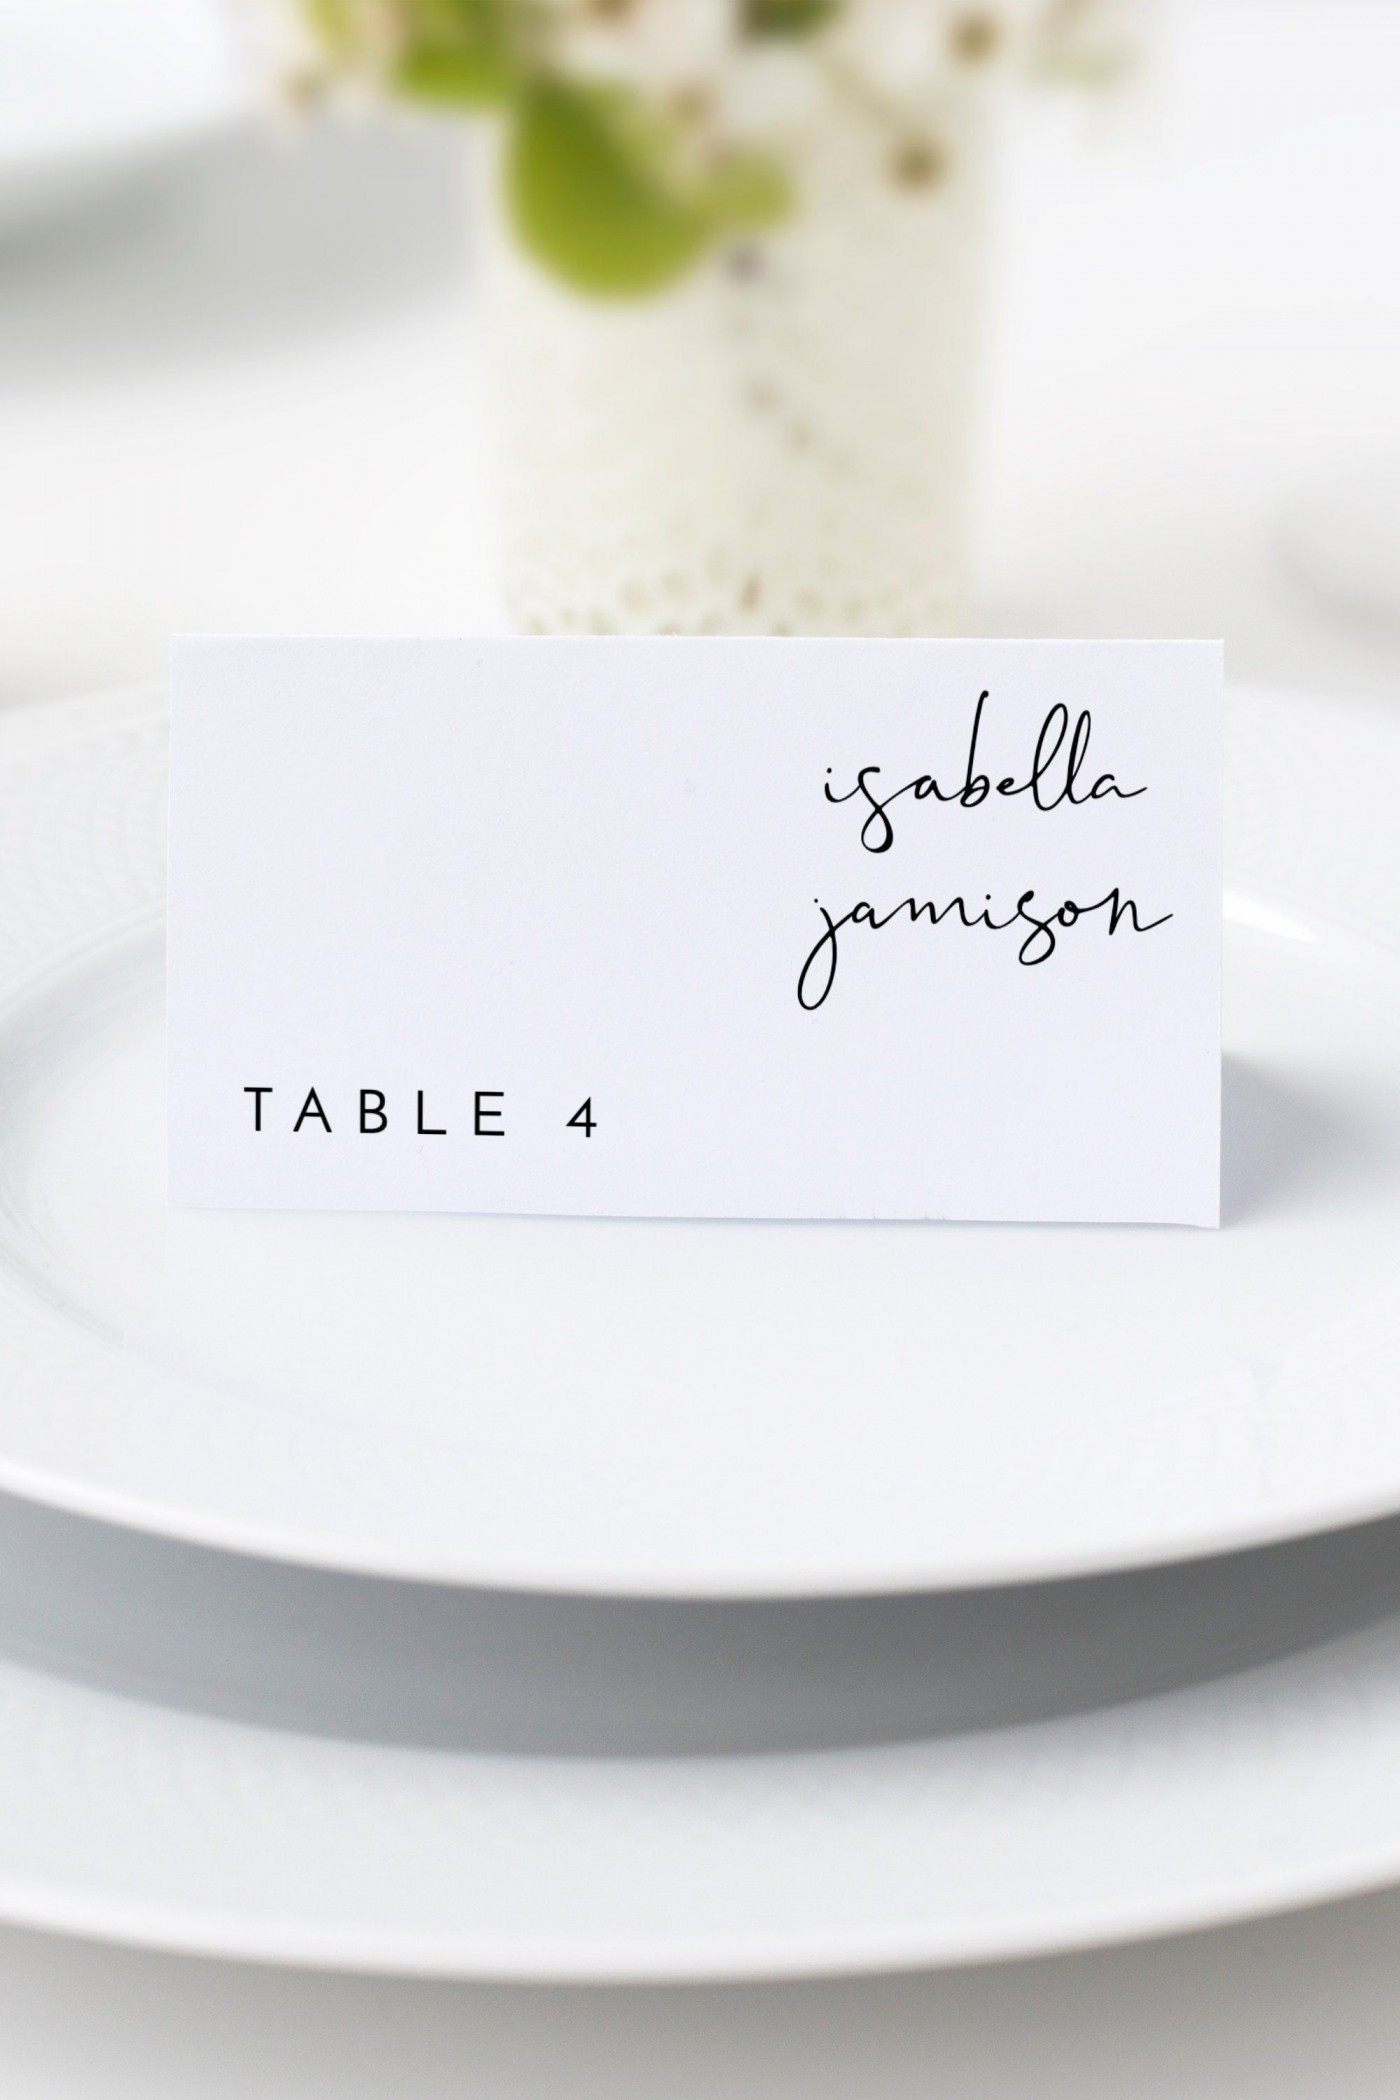 002 Fascinating Wedding Name Card Template Picture  Free Download Design Sticker Format1400